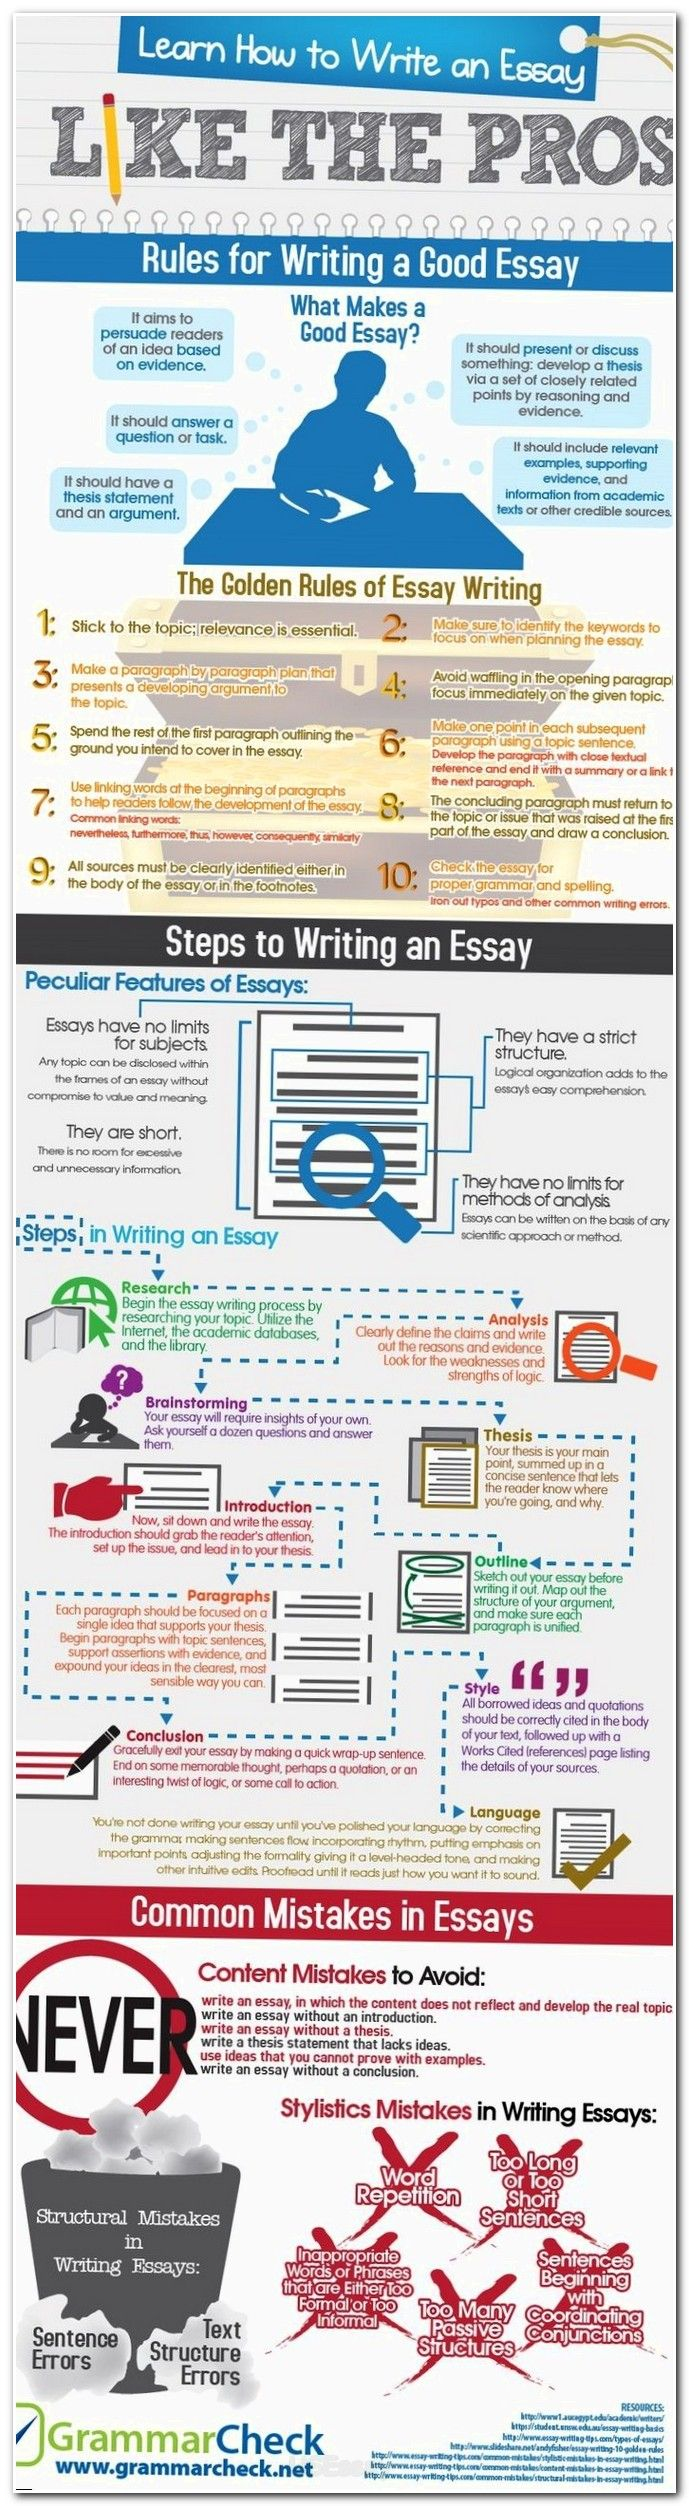 best apa format research paper ideas apa  structuring law essay topics structure of a law essay in the same way that you have a thesis to indicate the point of the essay you should have a topic